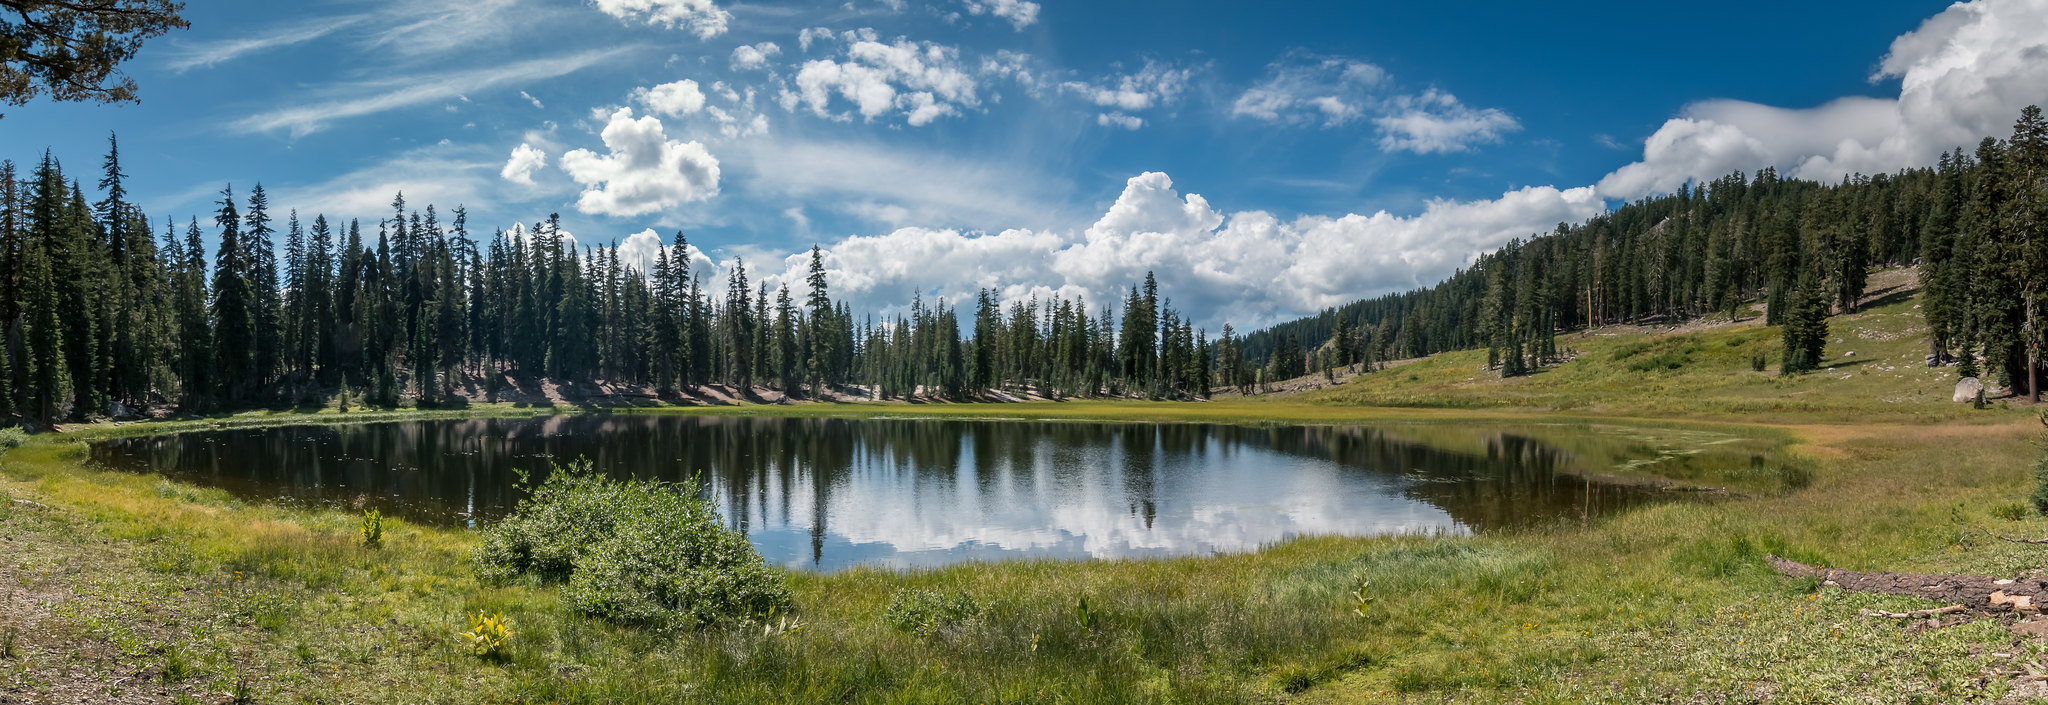 Lassen Volcanic NP - Californie - [USA]